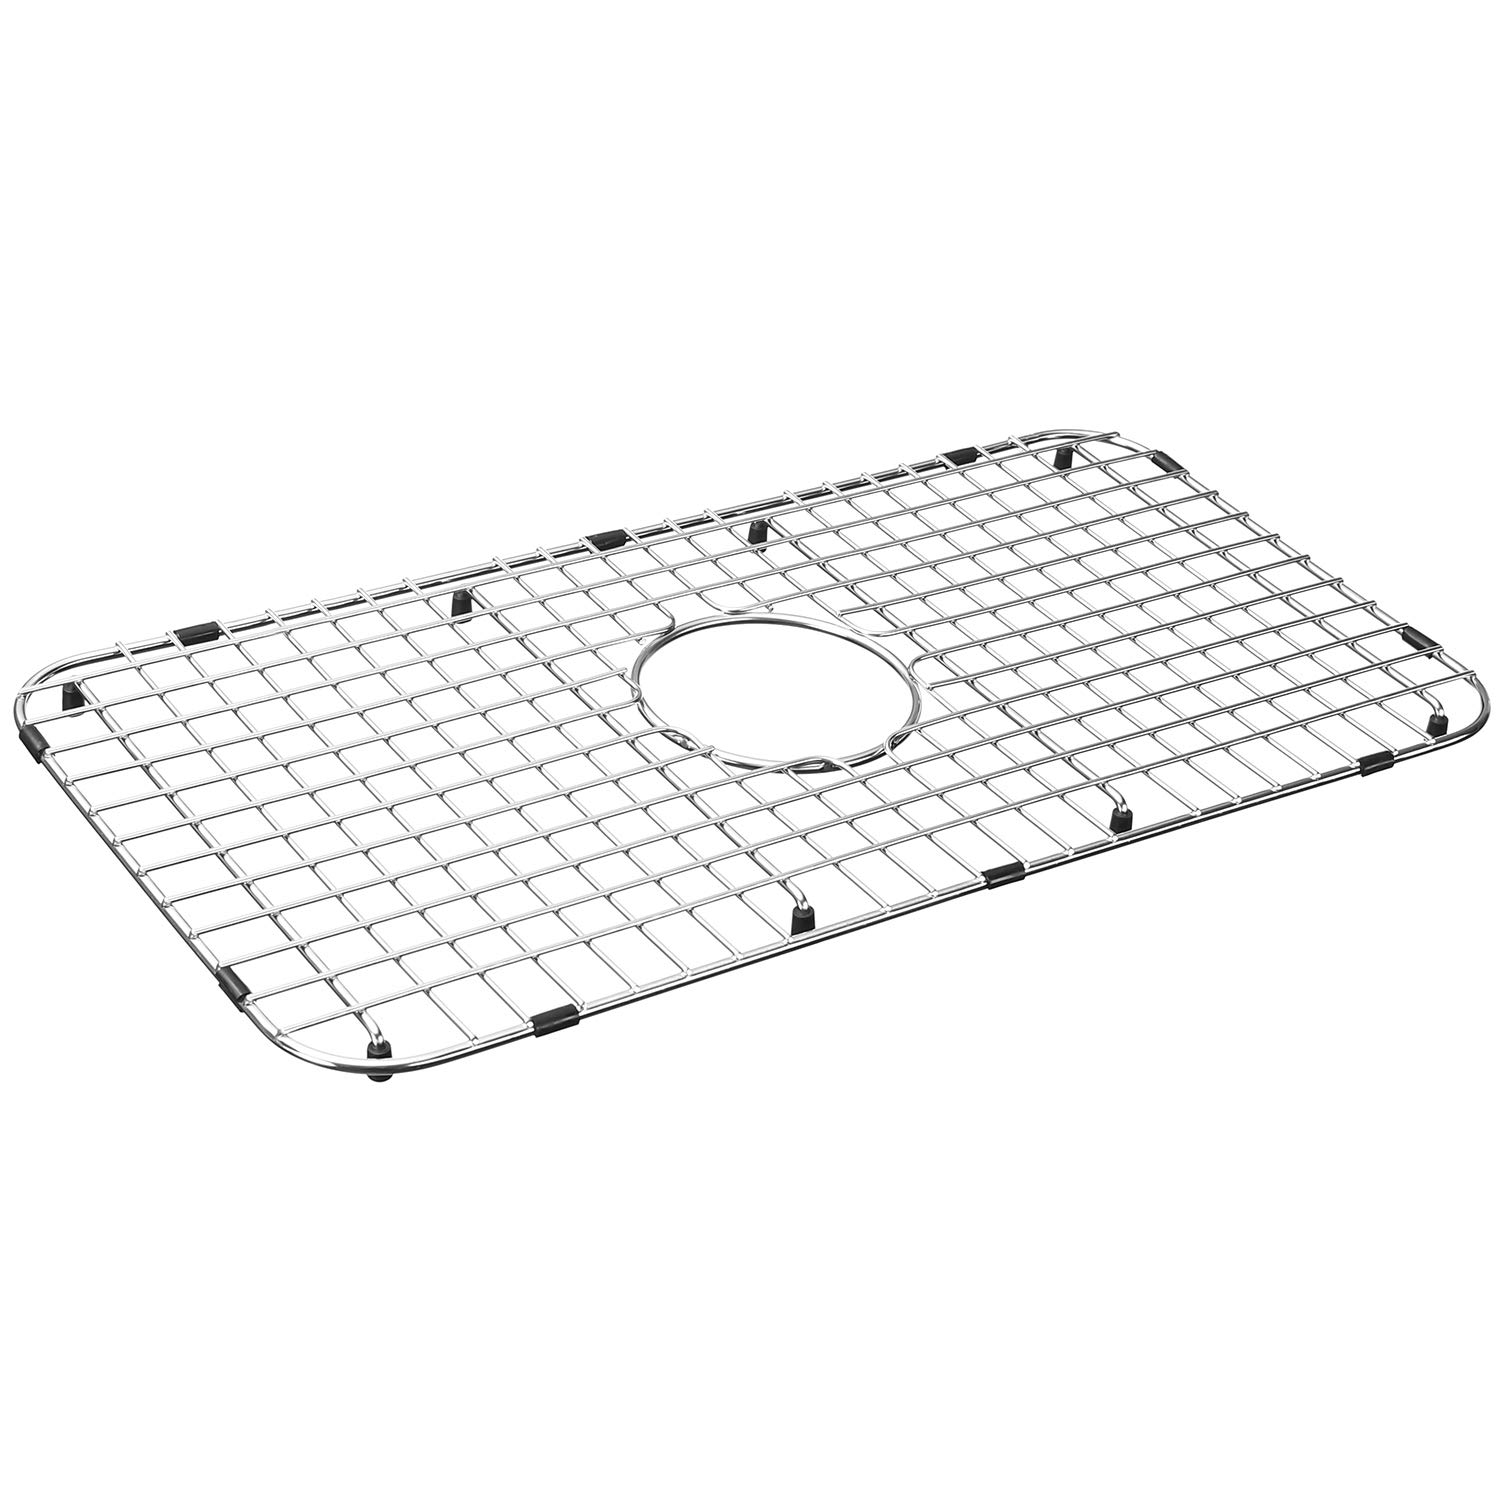 Serene Valley Sink Bottom Grid 25-1/8'' x 12-7/8'', Centered Drain with Corner Radius 1-1/2'', Sink Grid Stainless Steel NDG2513C by Serene Valley